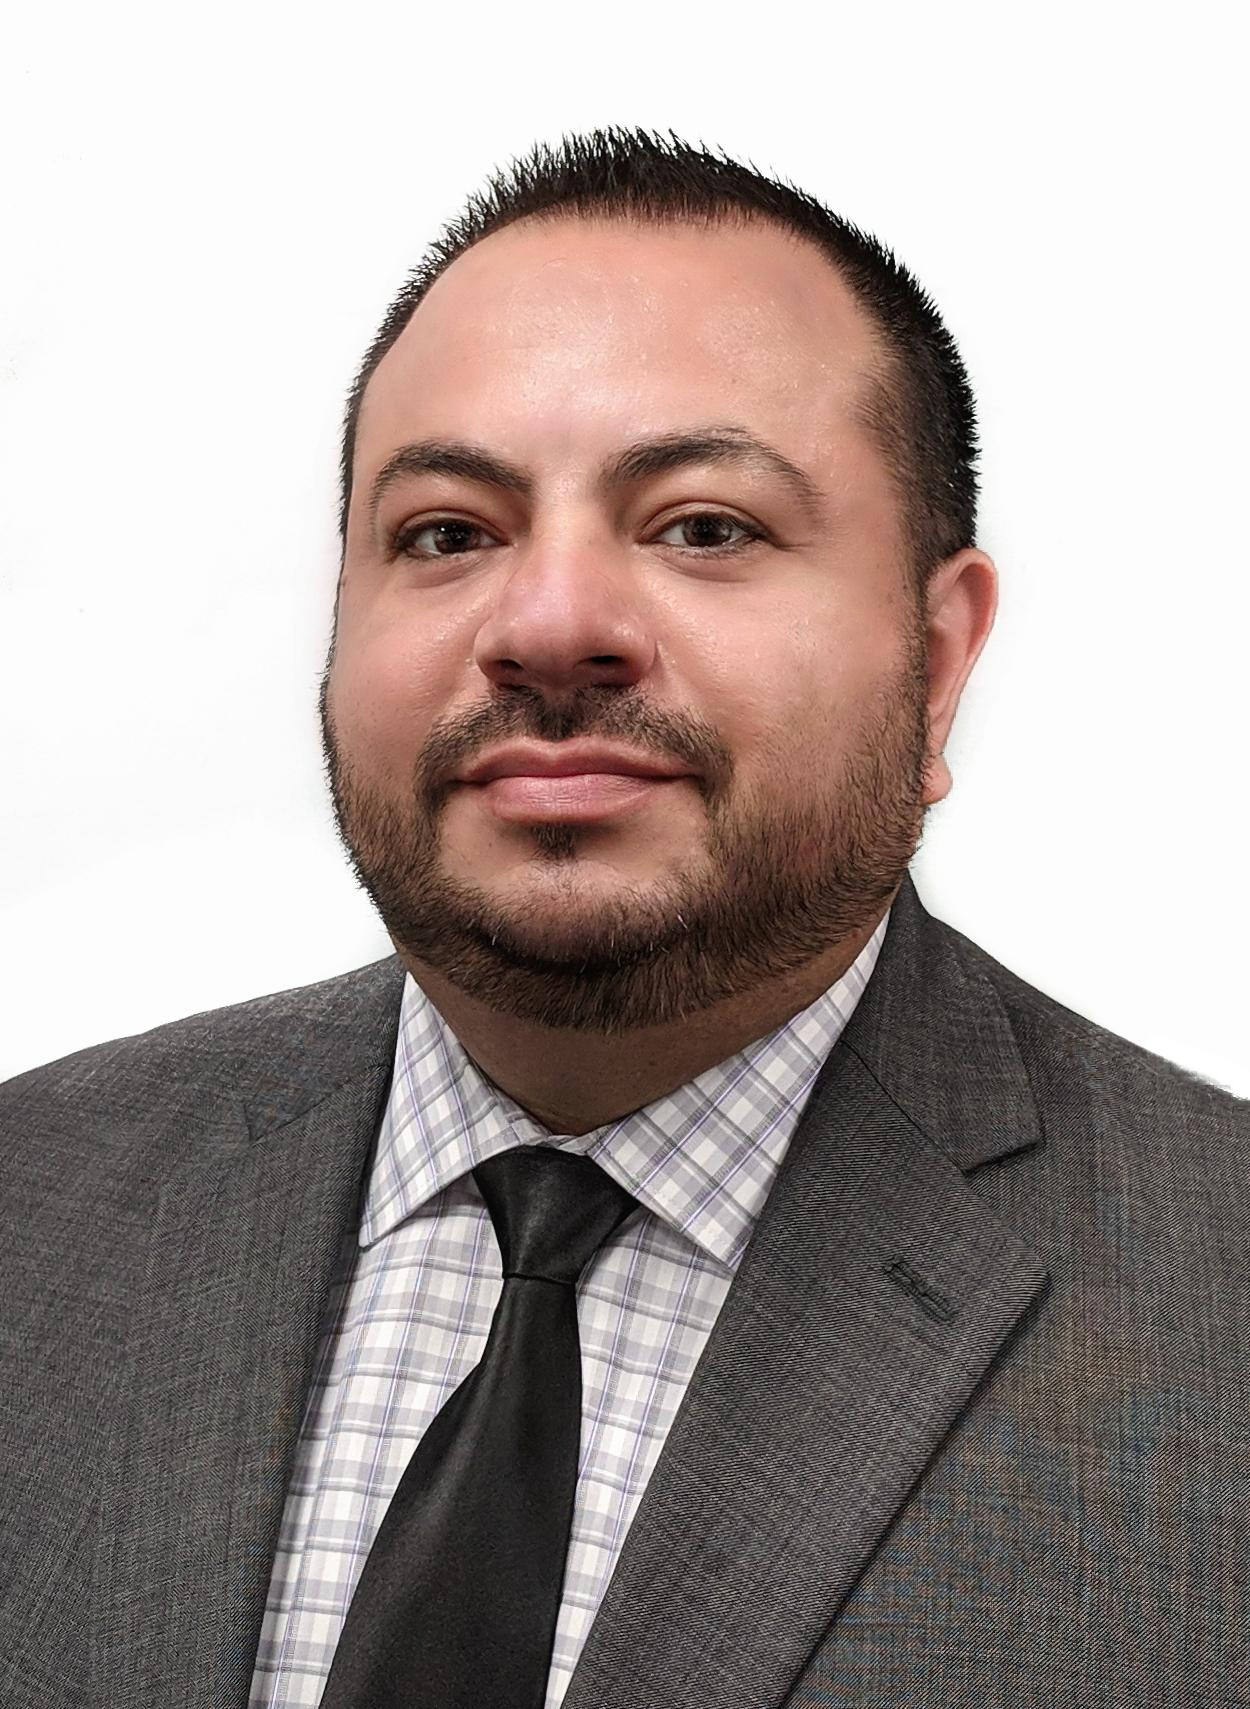 MAURICE ALEXANDER ESCOBAR Your Financial Professional & Insurance Agent